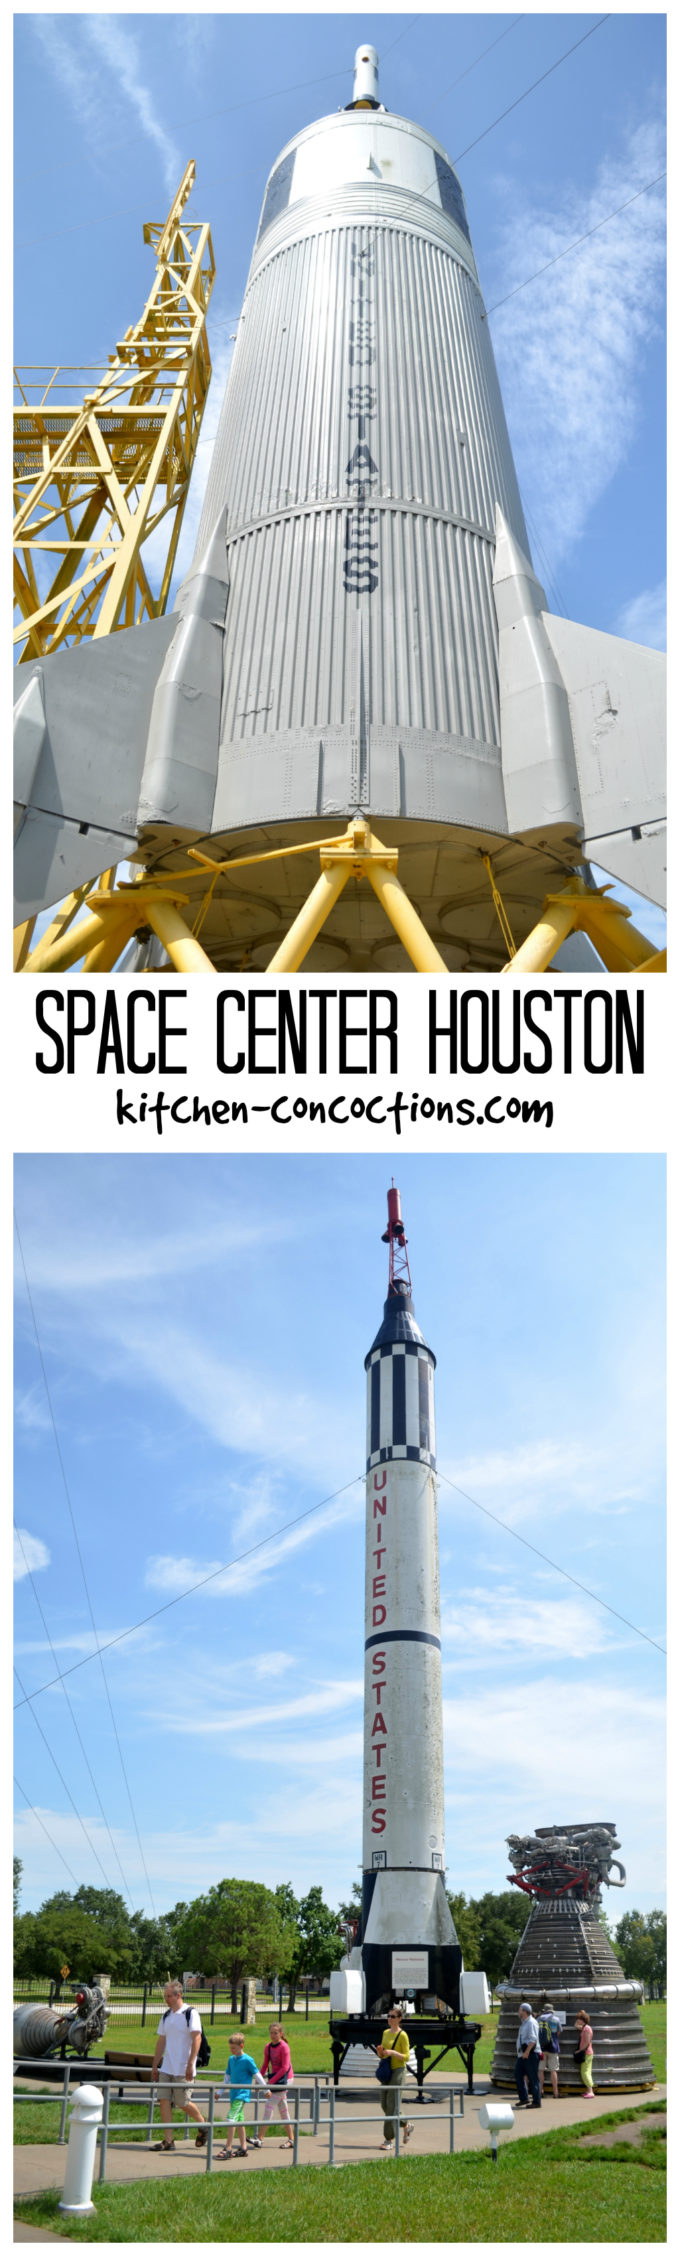 Space Center Houston